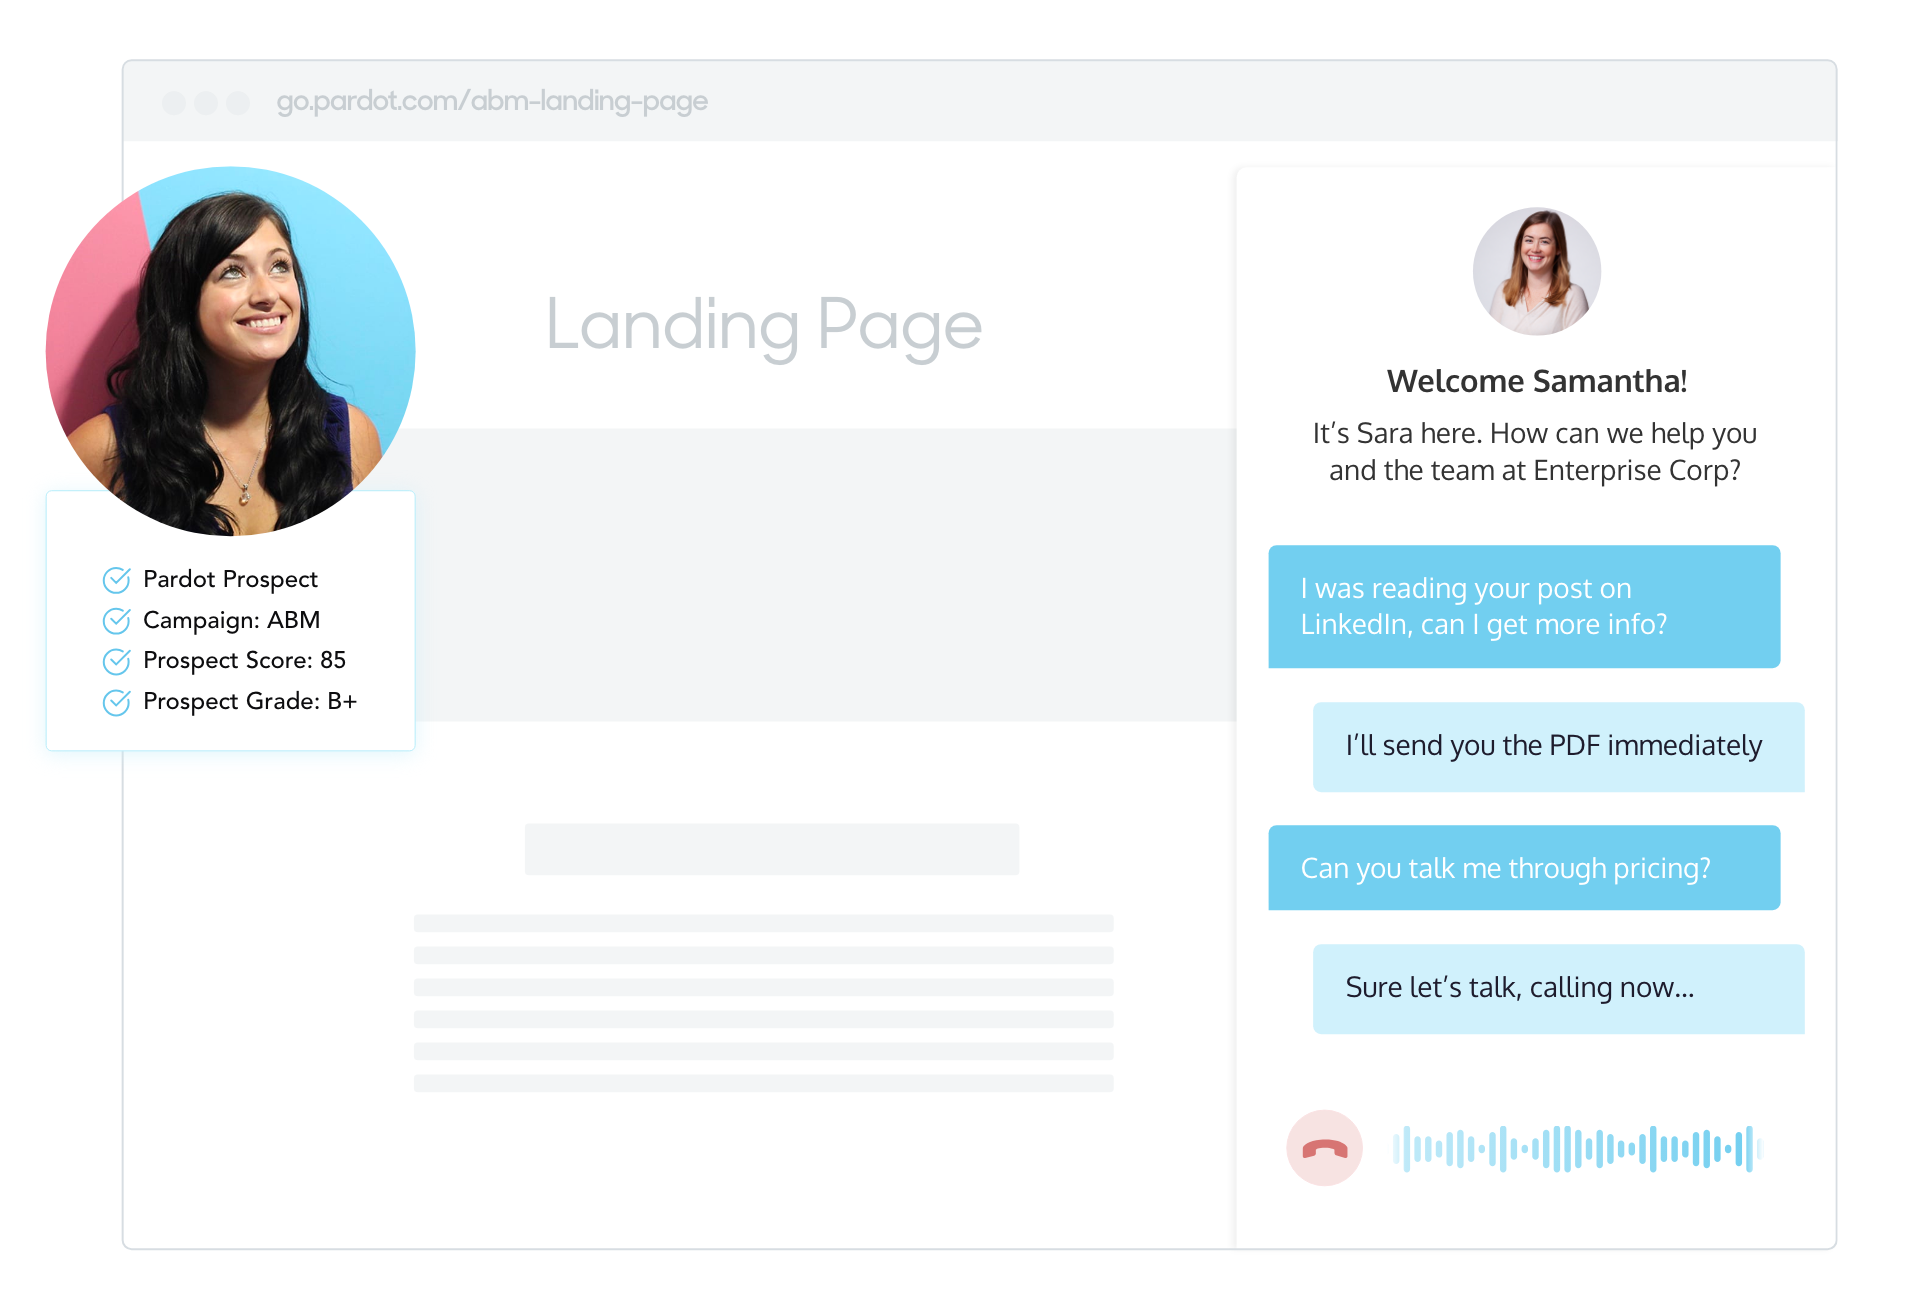 Using conversational marketing to engage a prospect that meets Pardot score and grade criteria